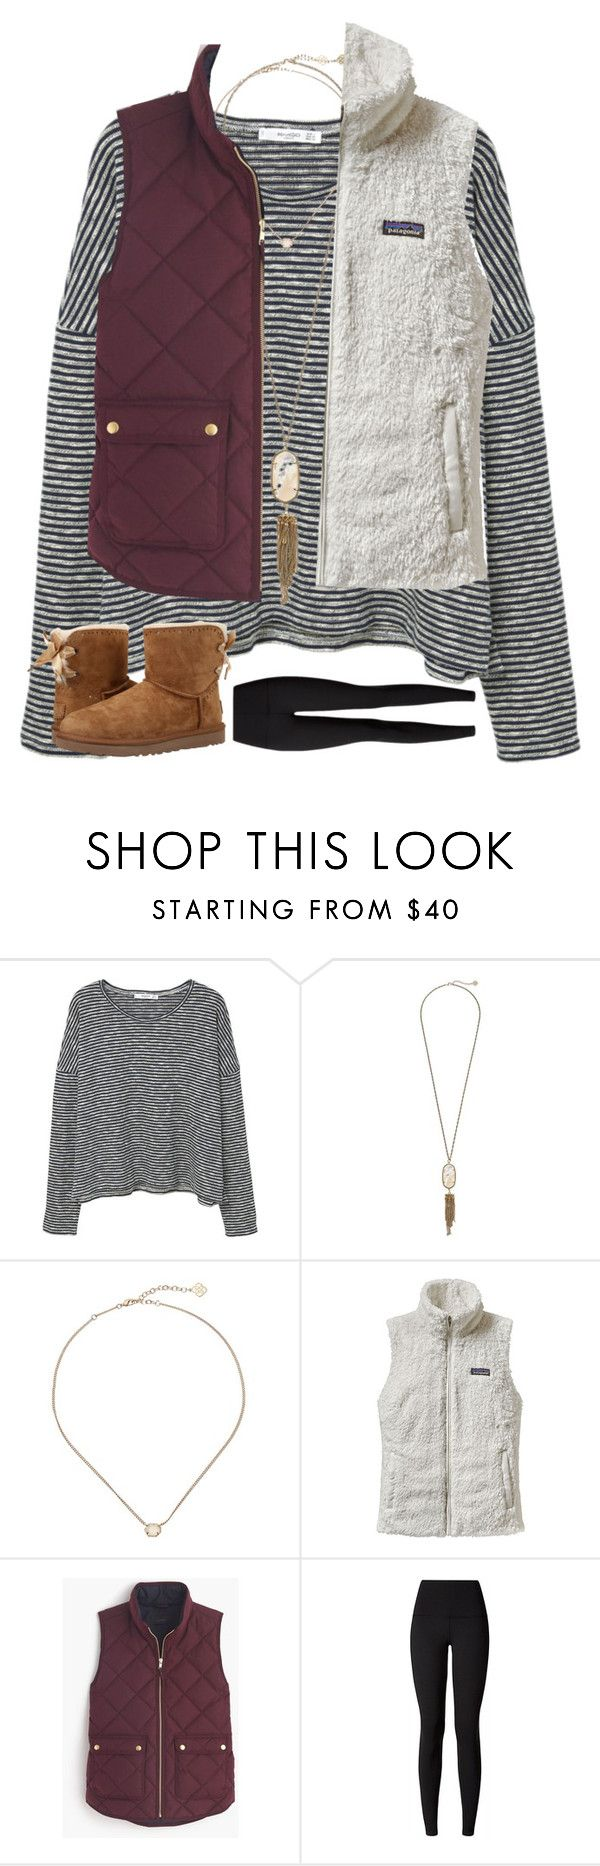 """""""Which vest??"""" by southernsophia ❤ liked on Polyvore featuring MANGO, Kendra Scott, Patagonia, J.Crew, lululemon and UGG"""